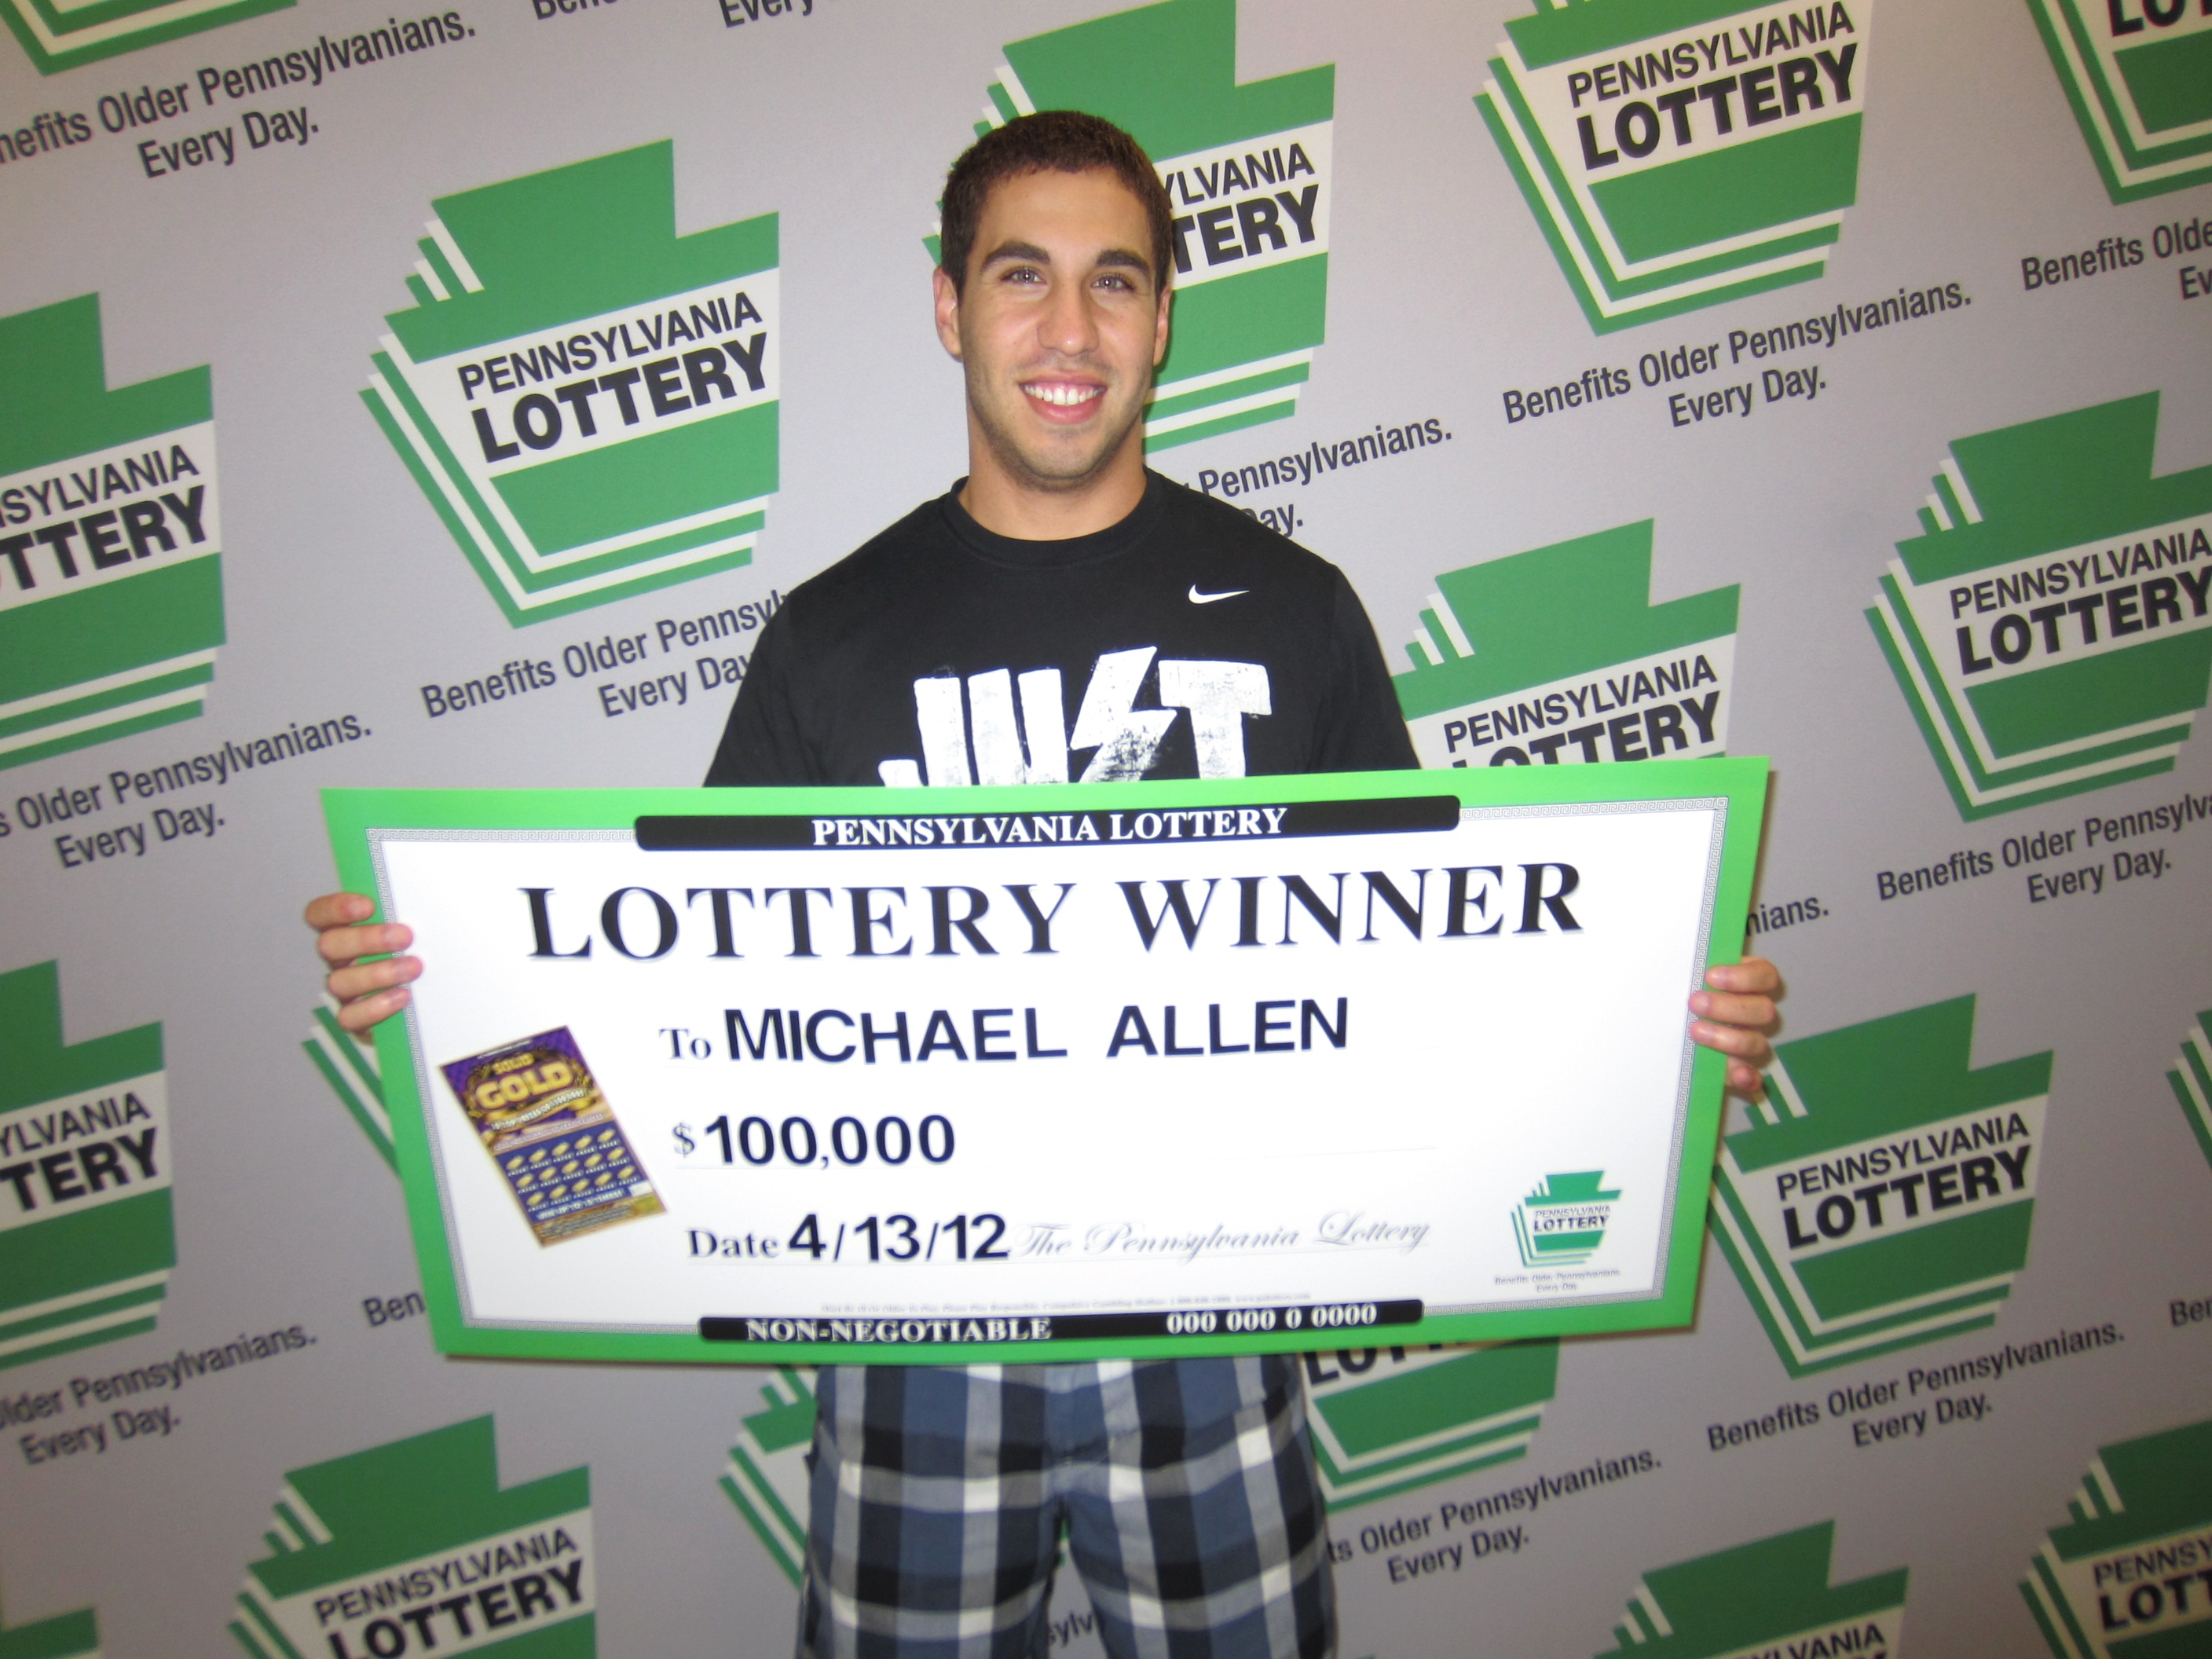 lottery winnings Get lotto numbers sent direct to you when you join mylottery you can have winning numbers sent to you your way, be the first to know about new scratch games, get exclusive features like auto-entry into second-chance drawings, and so much more.